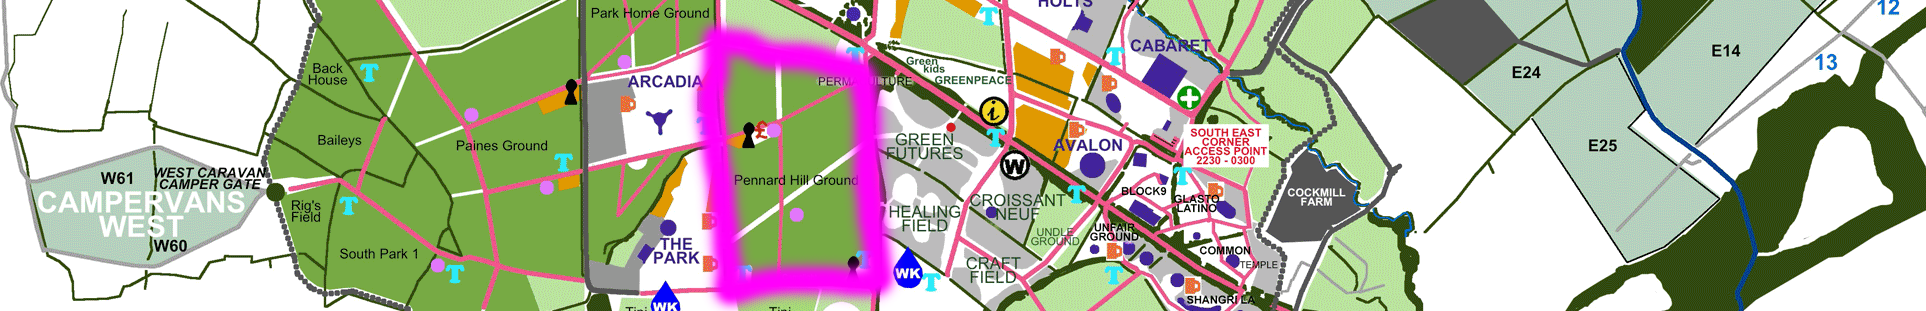 Pennard Hill Ground Glastonbury official map segment camping grounds stages campervan fields